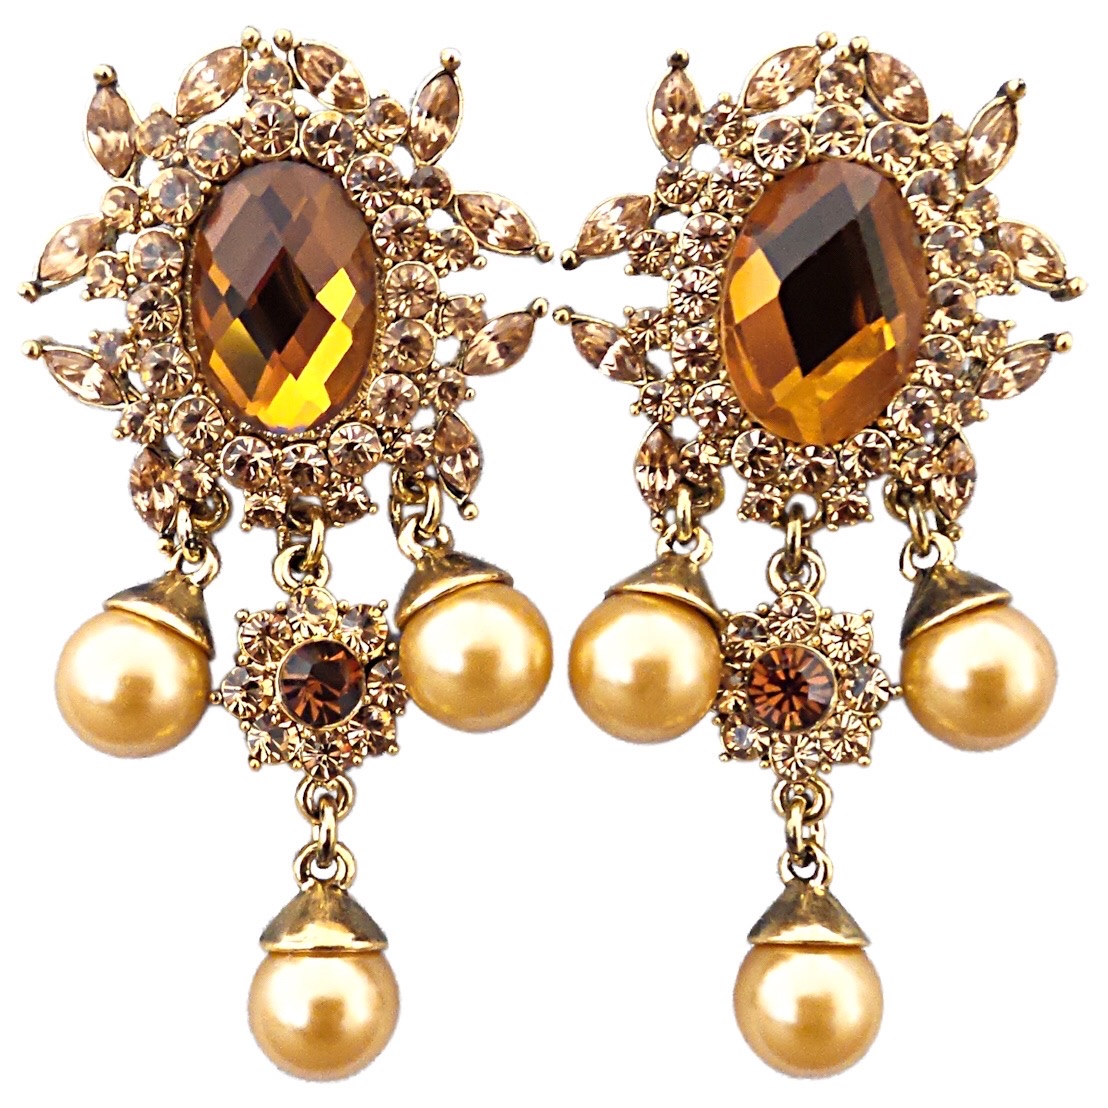 Earrings - LANA/LCTG